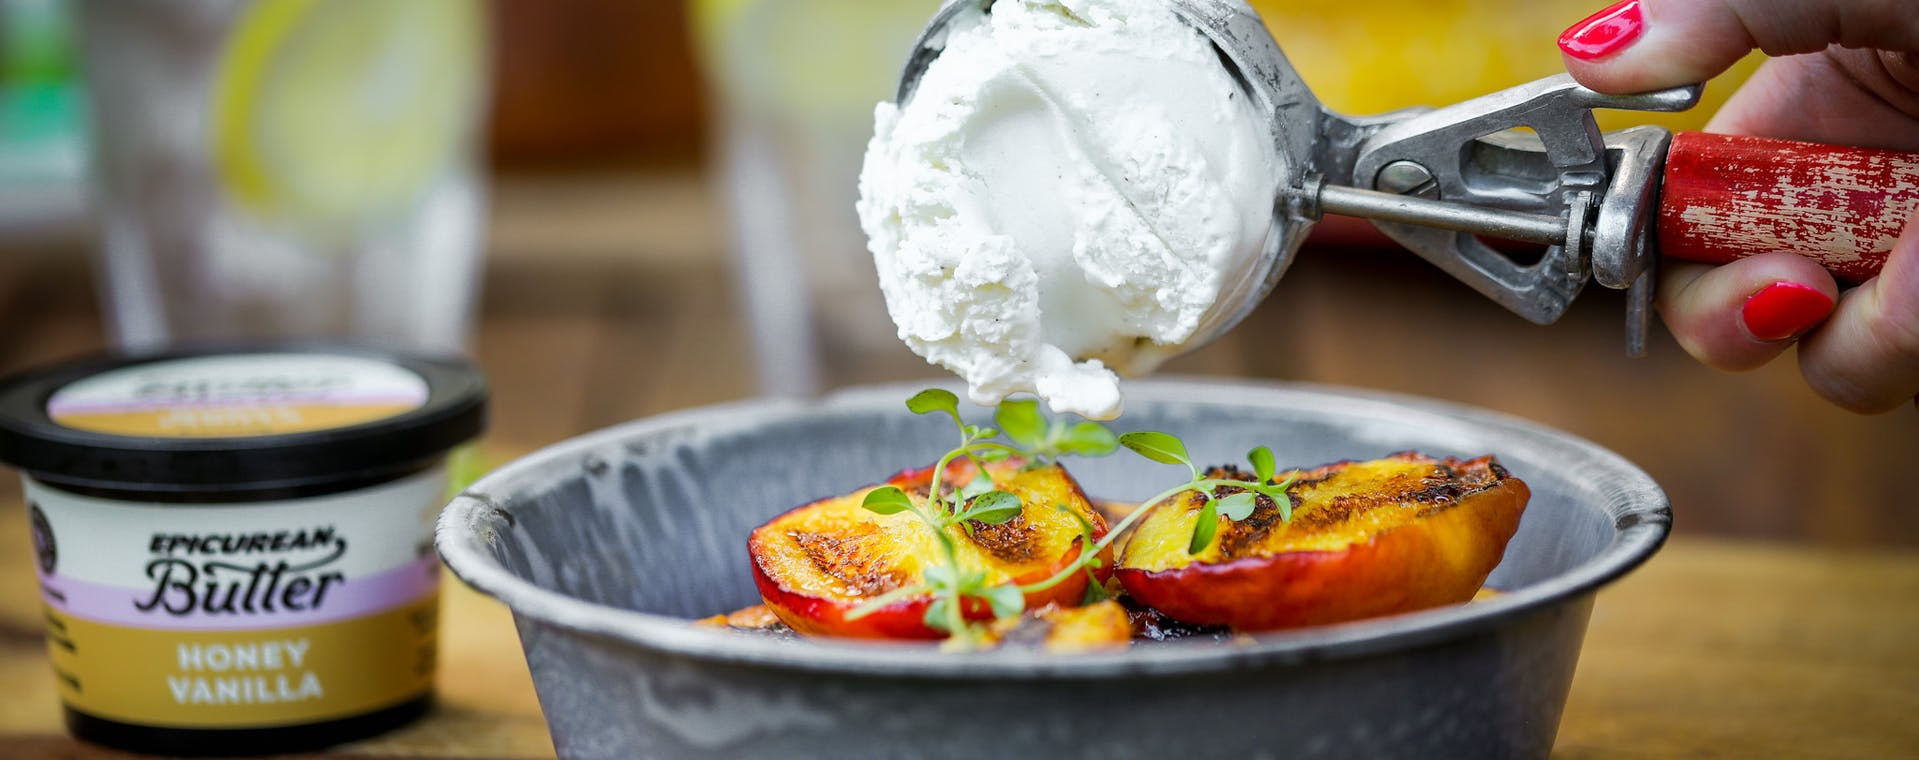 Grilled peaches with Epicurean Butter Honey Vanilla Flavored Butter